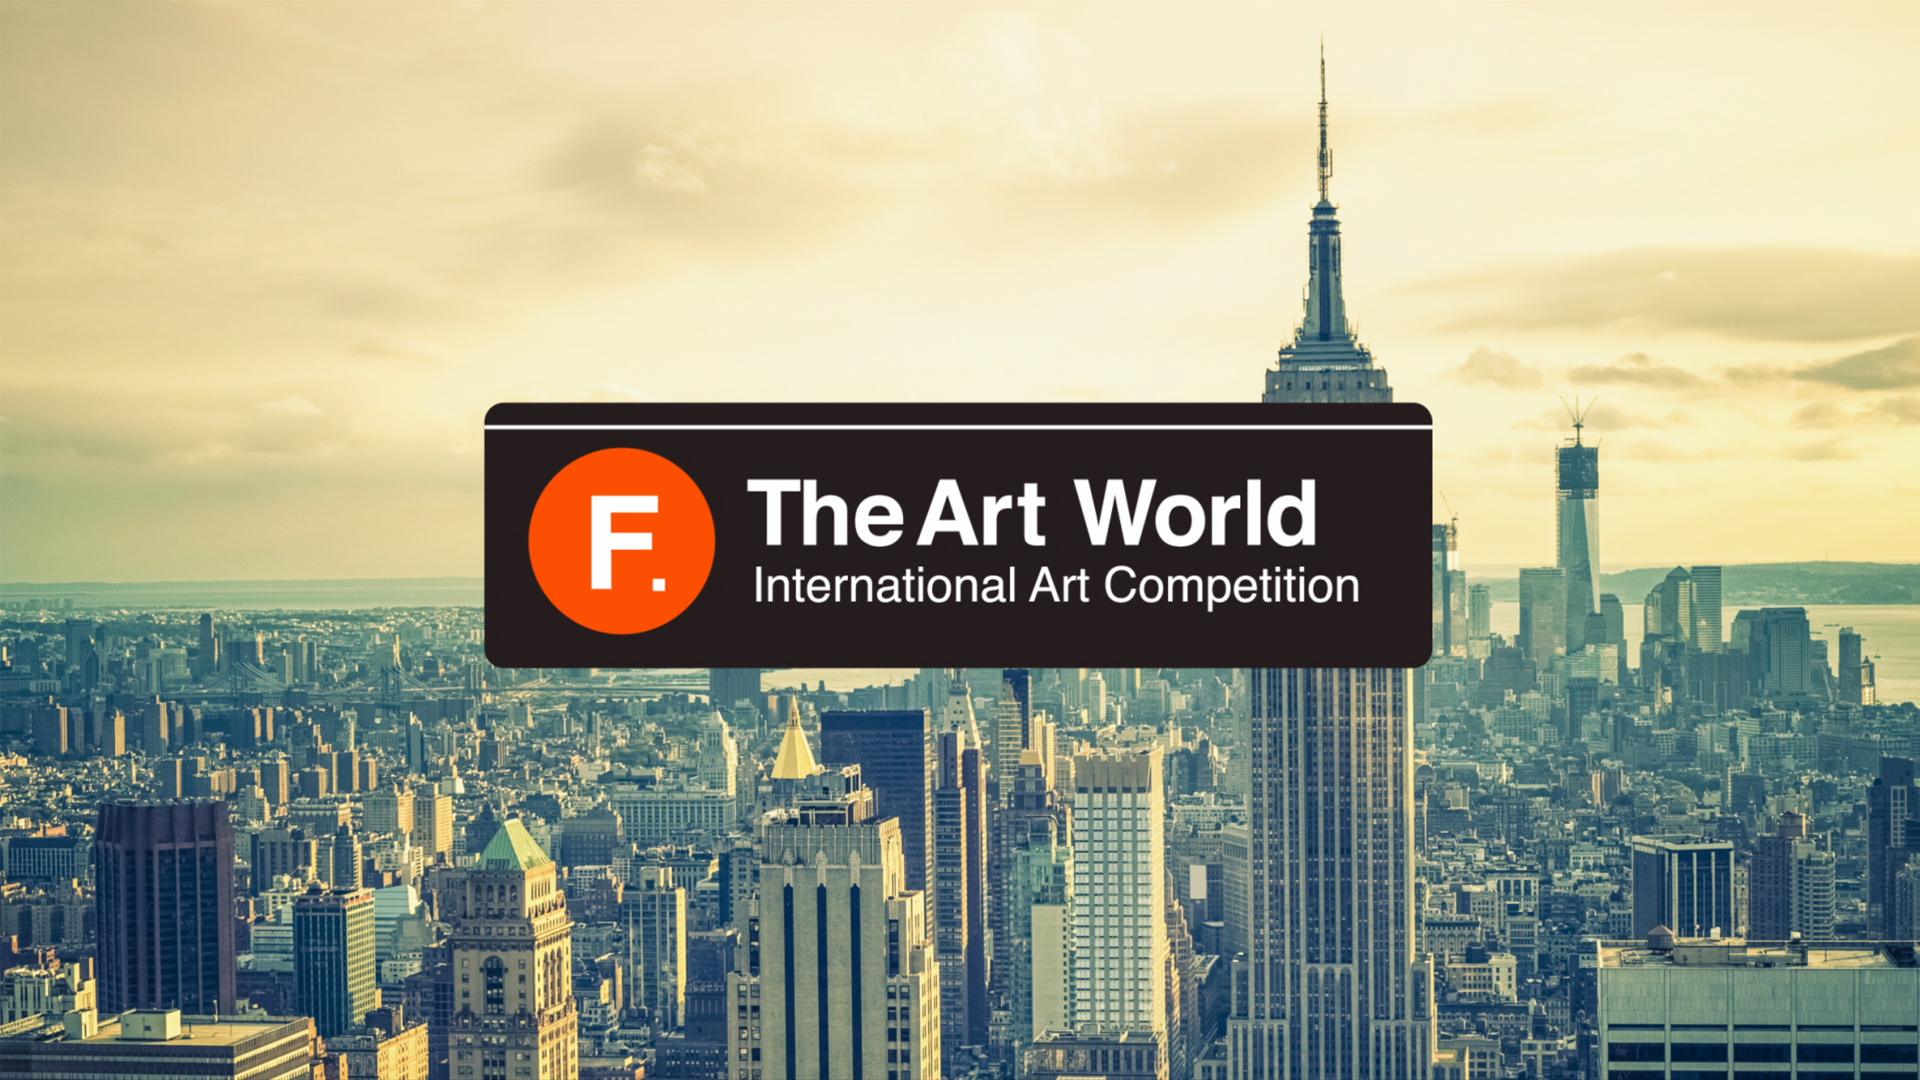 F The Art World – International Art Competiton